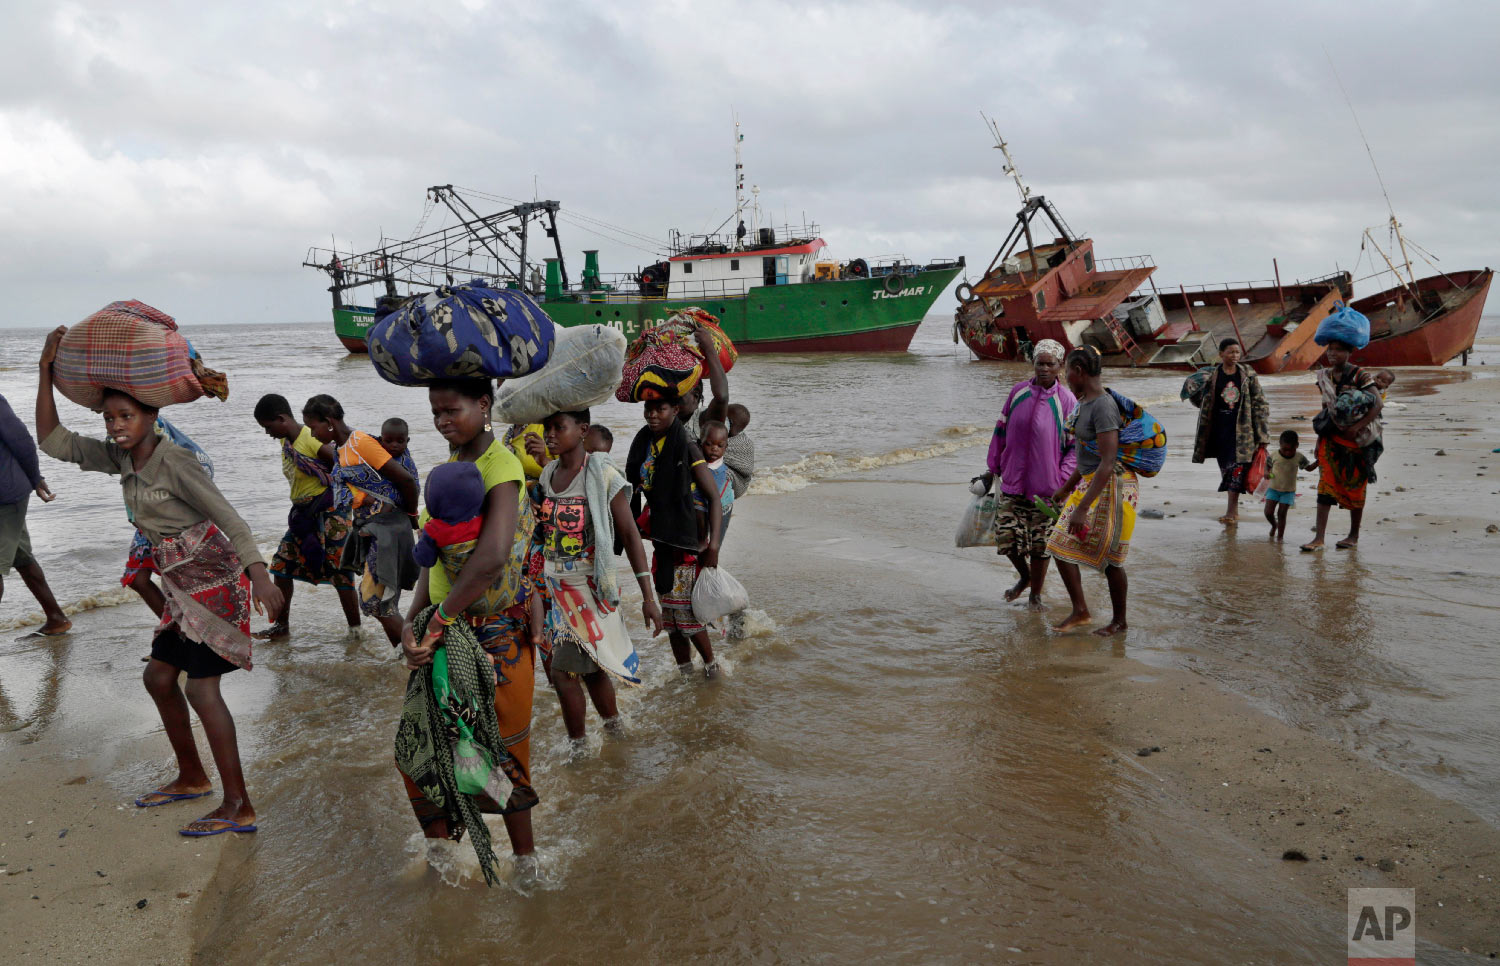 Displaced families arrive after being rescued by boat from a flooded area of Buzi district, 200 kilometers (120 miles) outside Beira, Mozambique, on Saturday, March 23, 2019. (AP Photo/Themba Hadebe)